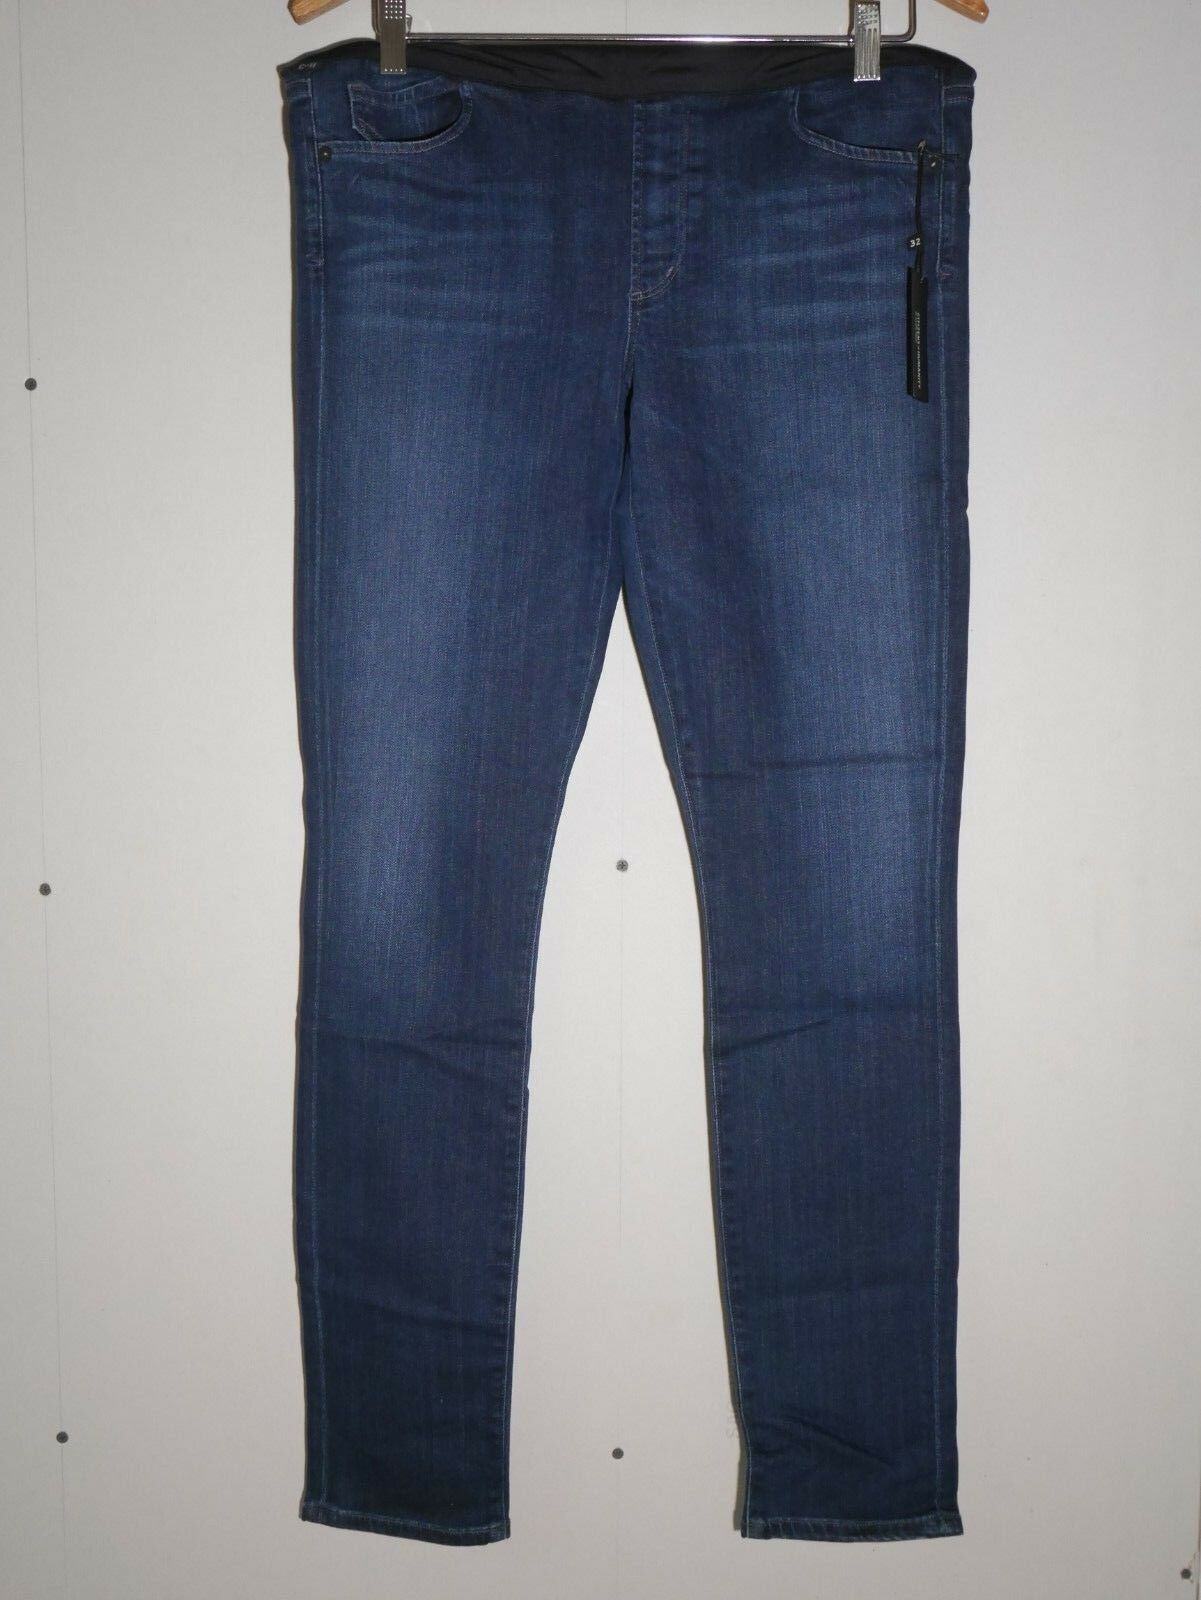 198 NEW Citizens of Humanity Avedon Ultra Skinny Maternity Jeans Belly Panel 32